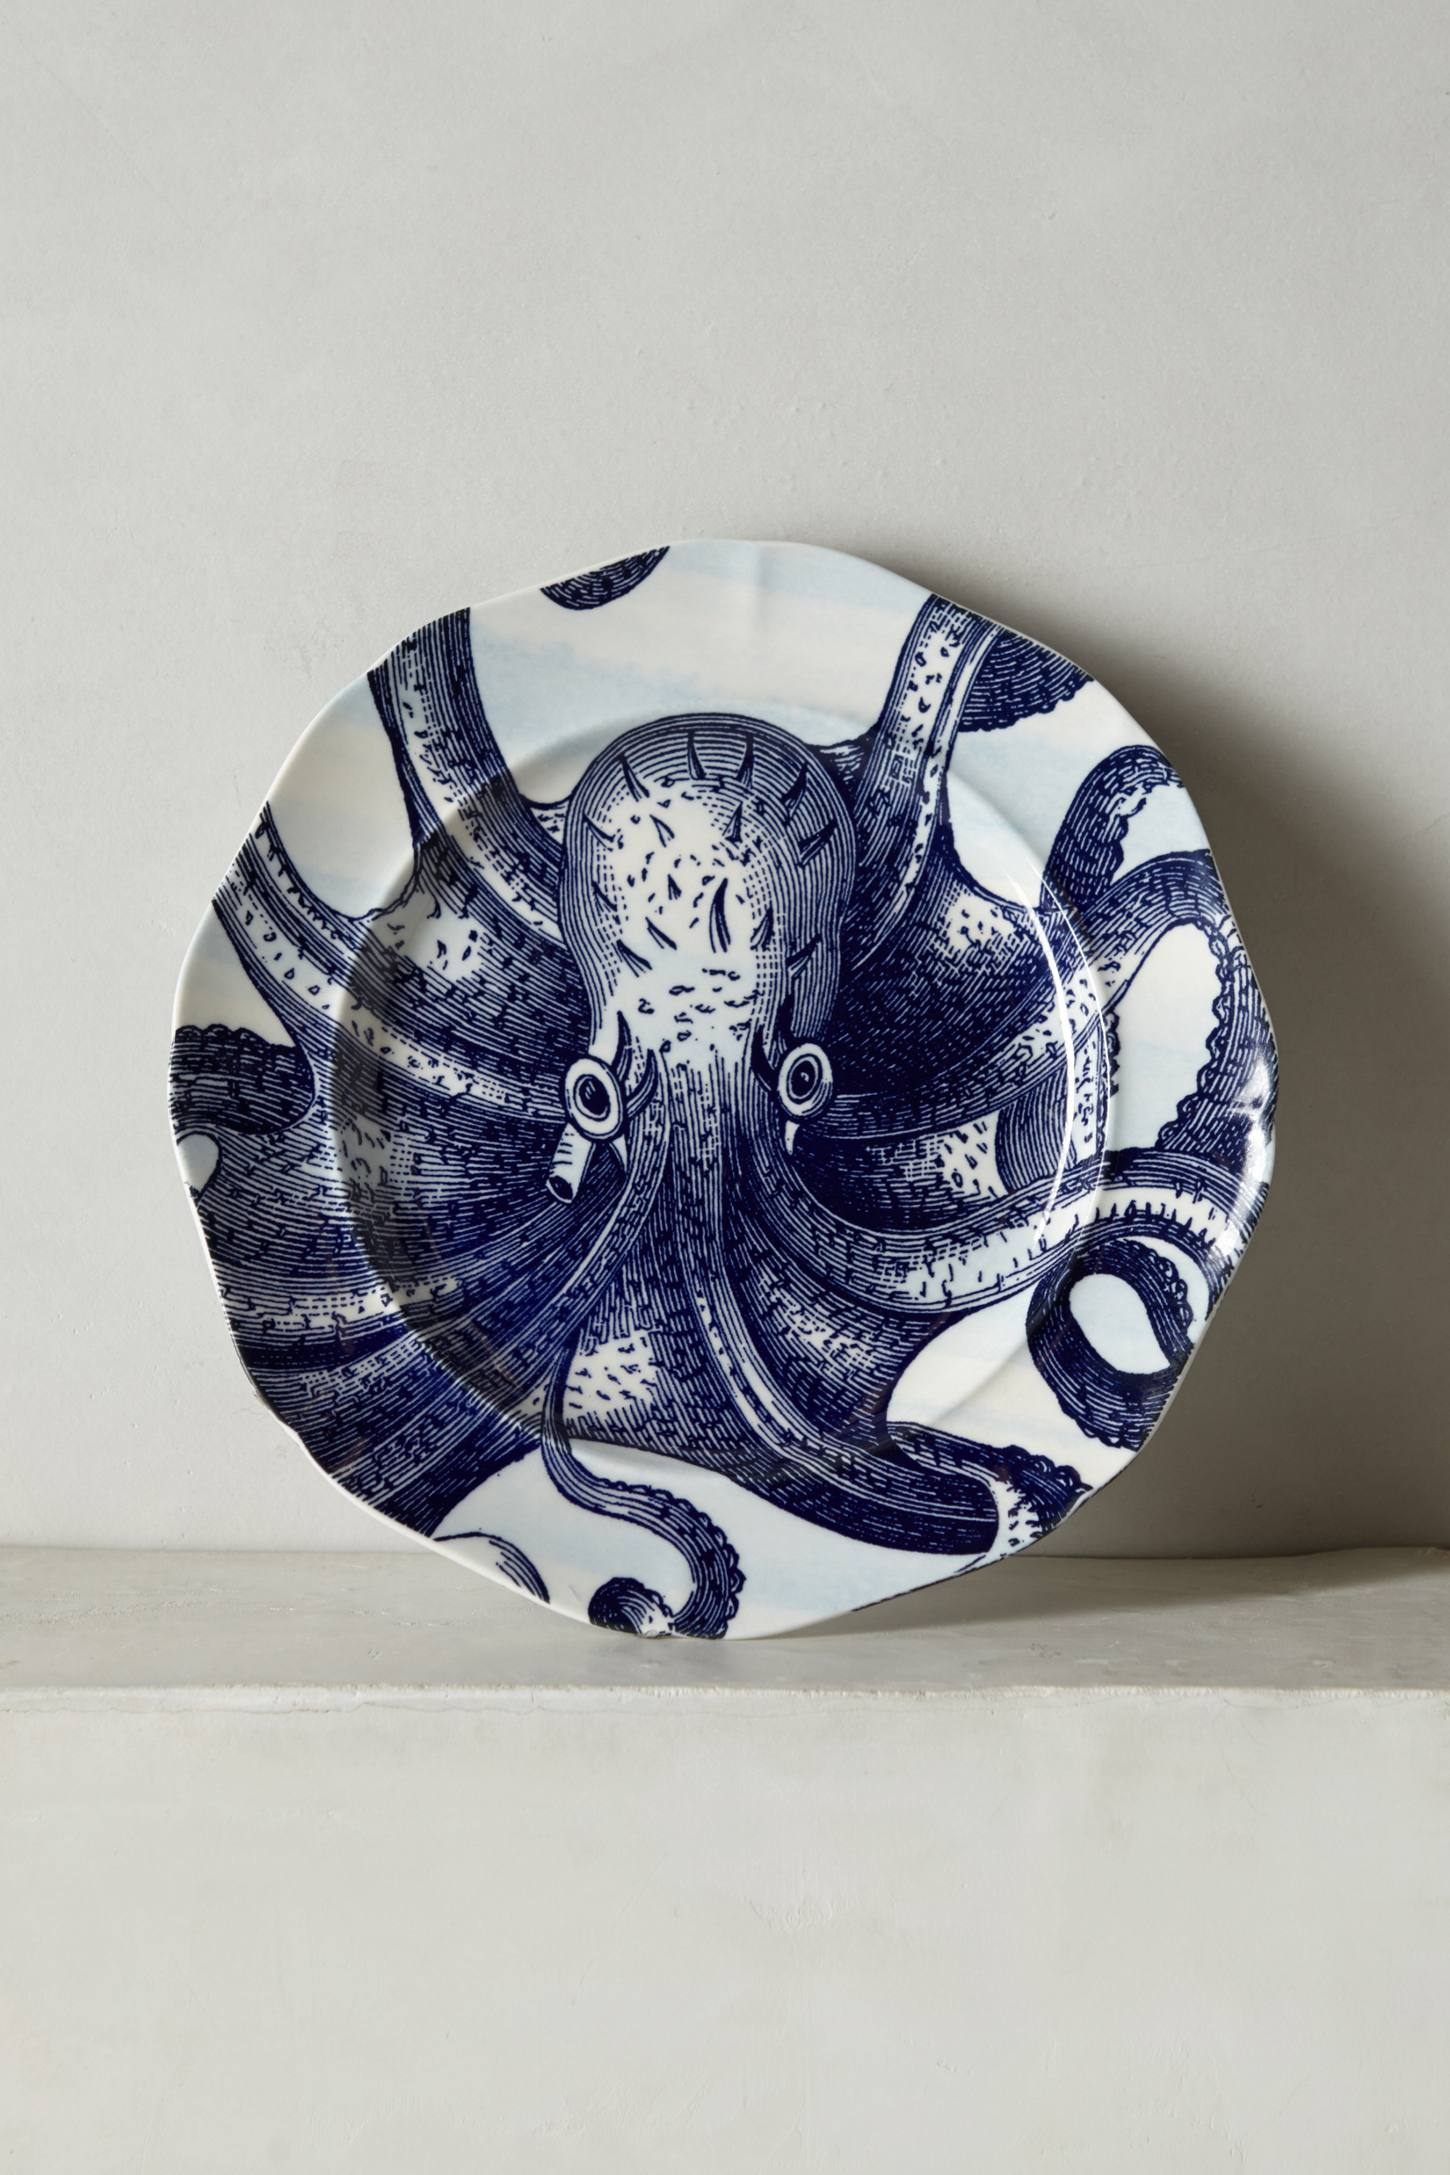 Slide View: 1: From The Deep Side Plate, Octopus